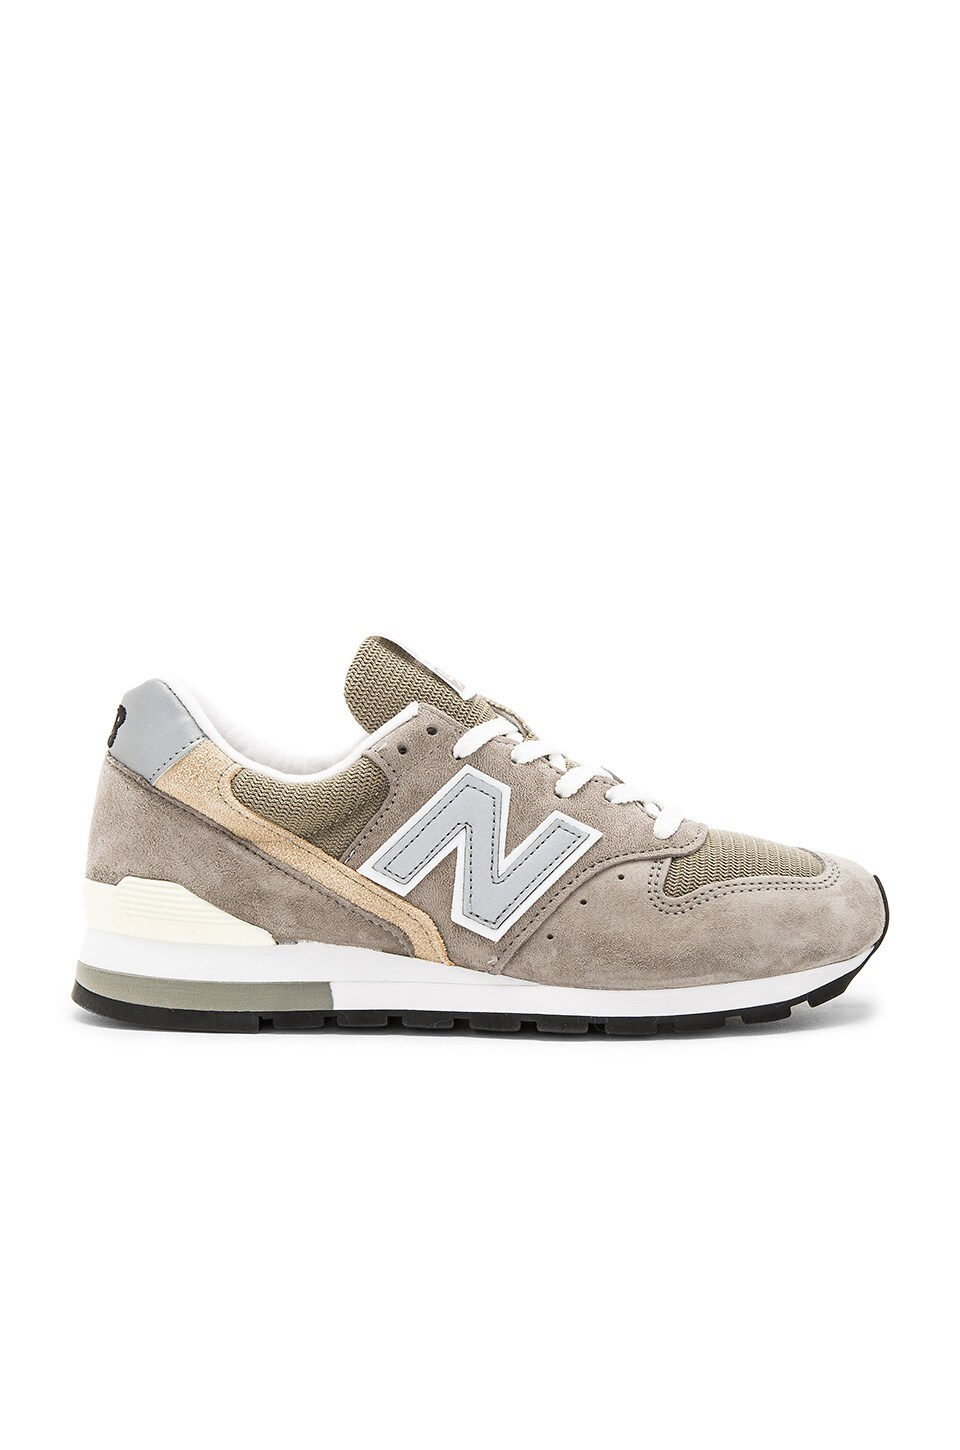 New Balance M996 in Grey